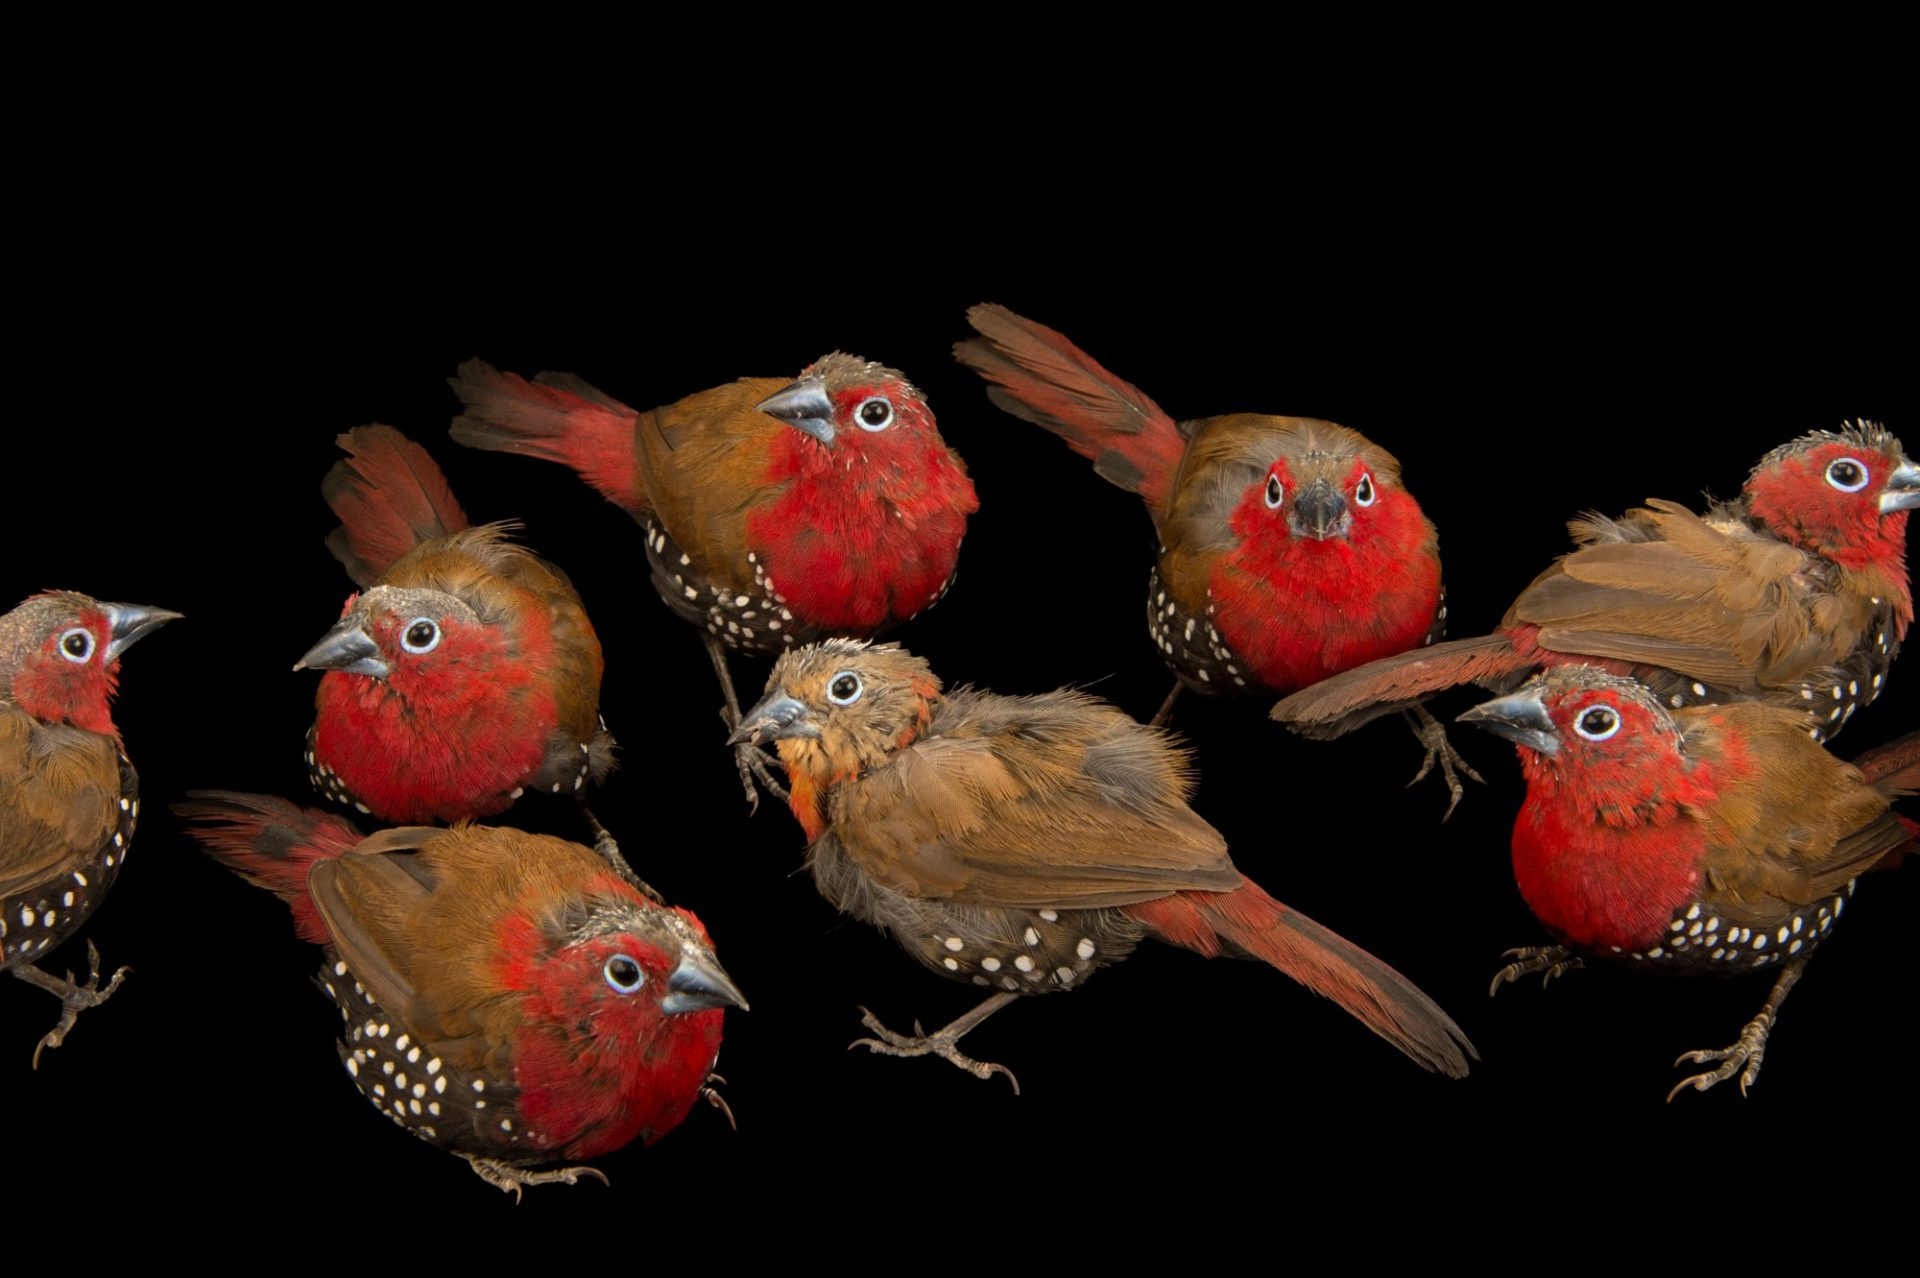 Photo: Eight red-throated twinspot or Peters's twinspot (Hypargos niveoguttatus) from a private collection in Choussy, France.